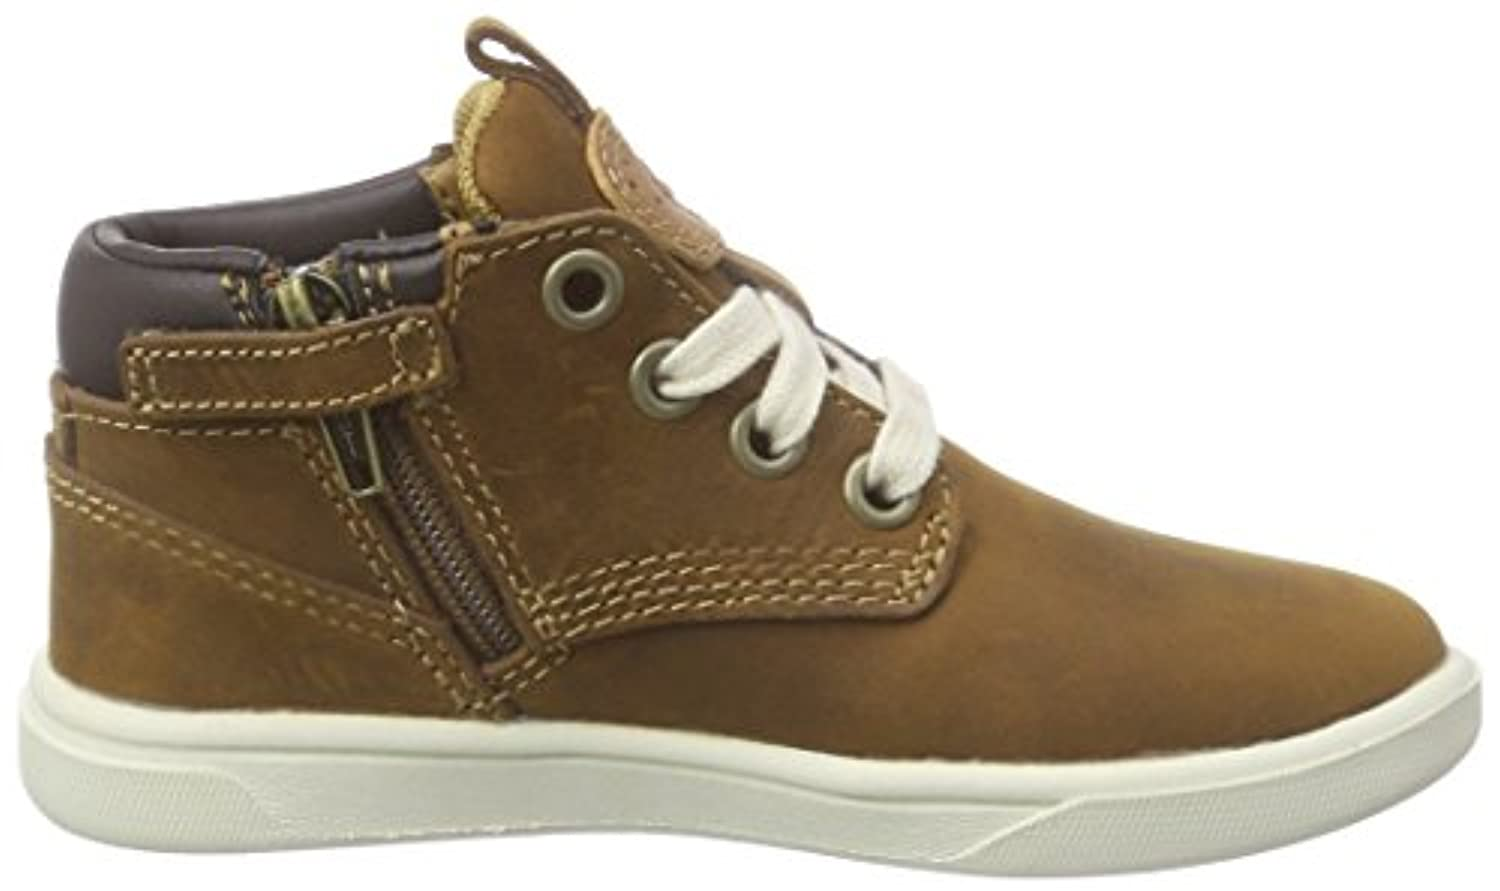 Timberland Groveton_groveton Leather Chukka, Unisex Kids' Low-Top Sneakers, Brown (Glazed Ginger Roughcut), 6.5 Child UK (23.5 EU)